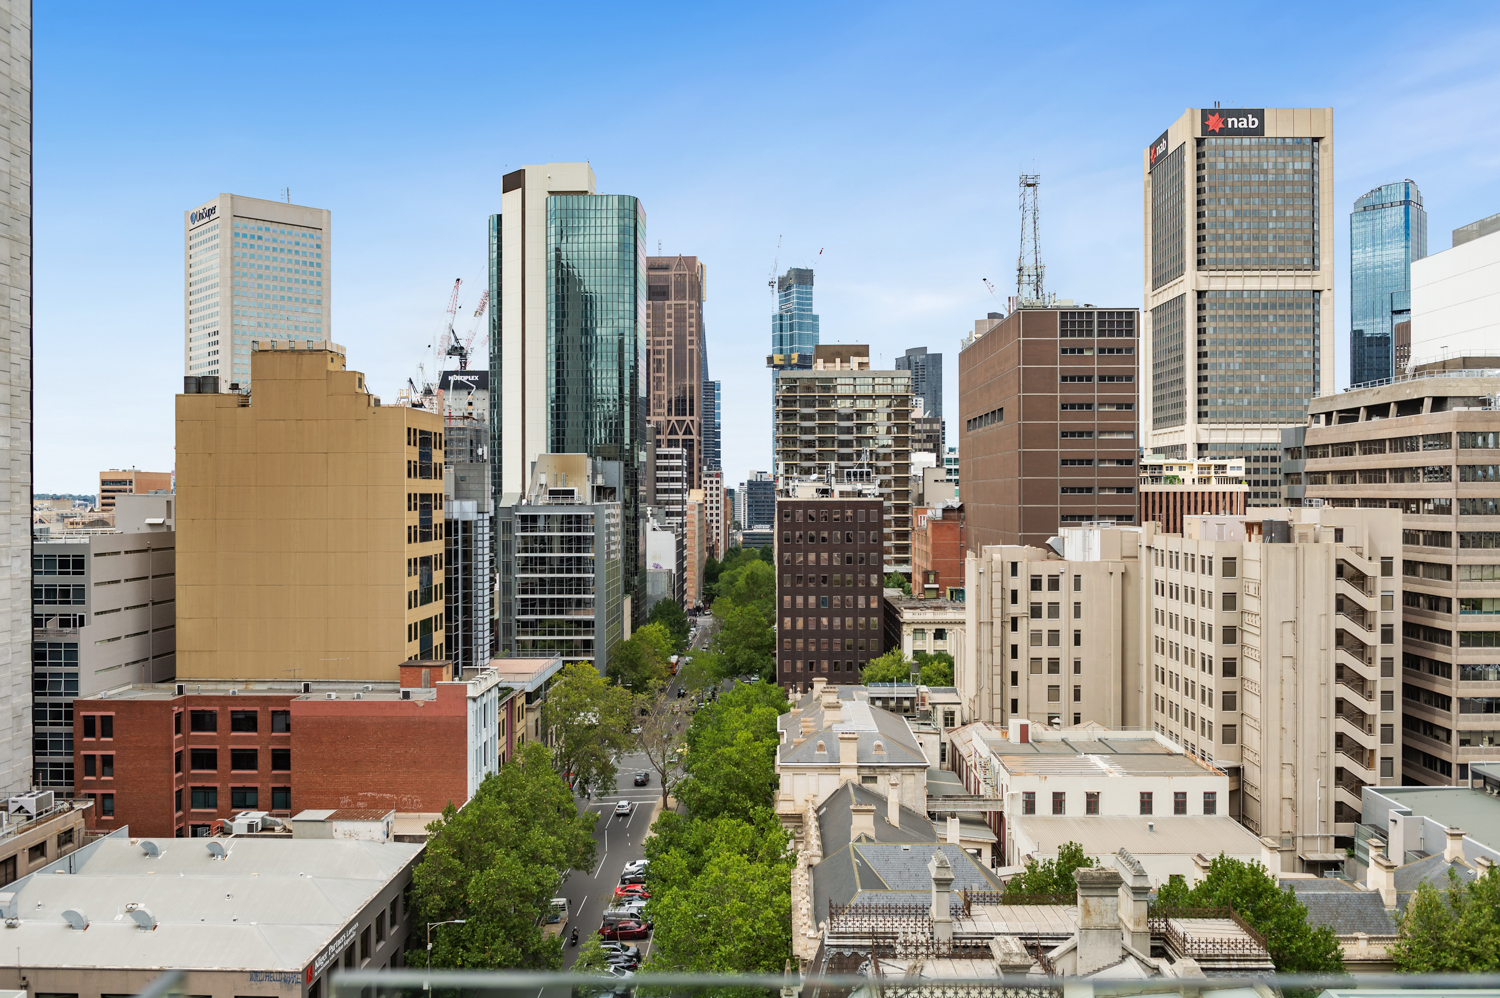 152-299-queen-street-melbourne-student-accommodation-Melbourne-Balcony-View-Unilodgers